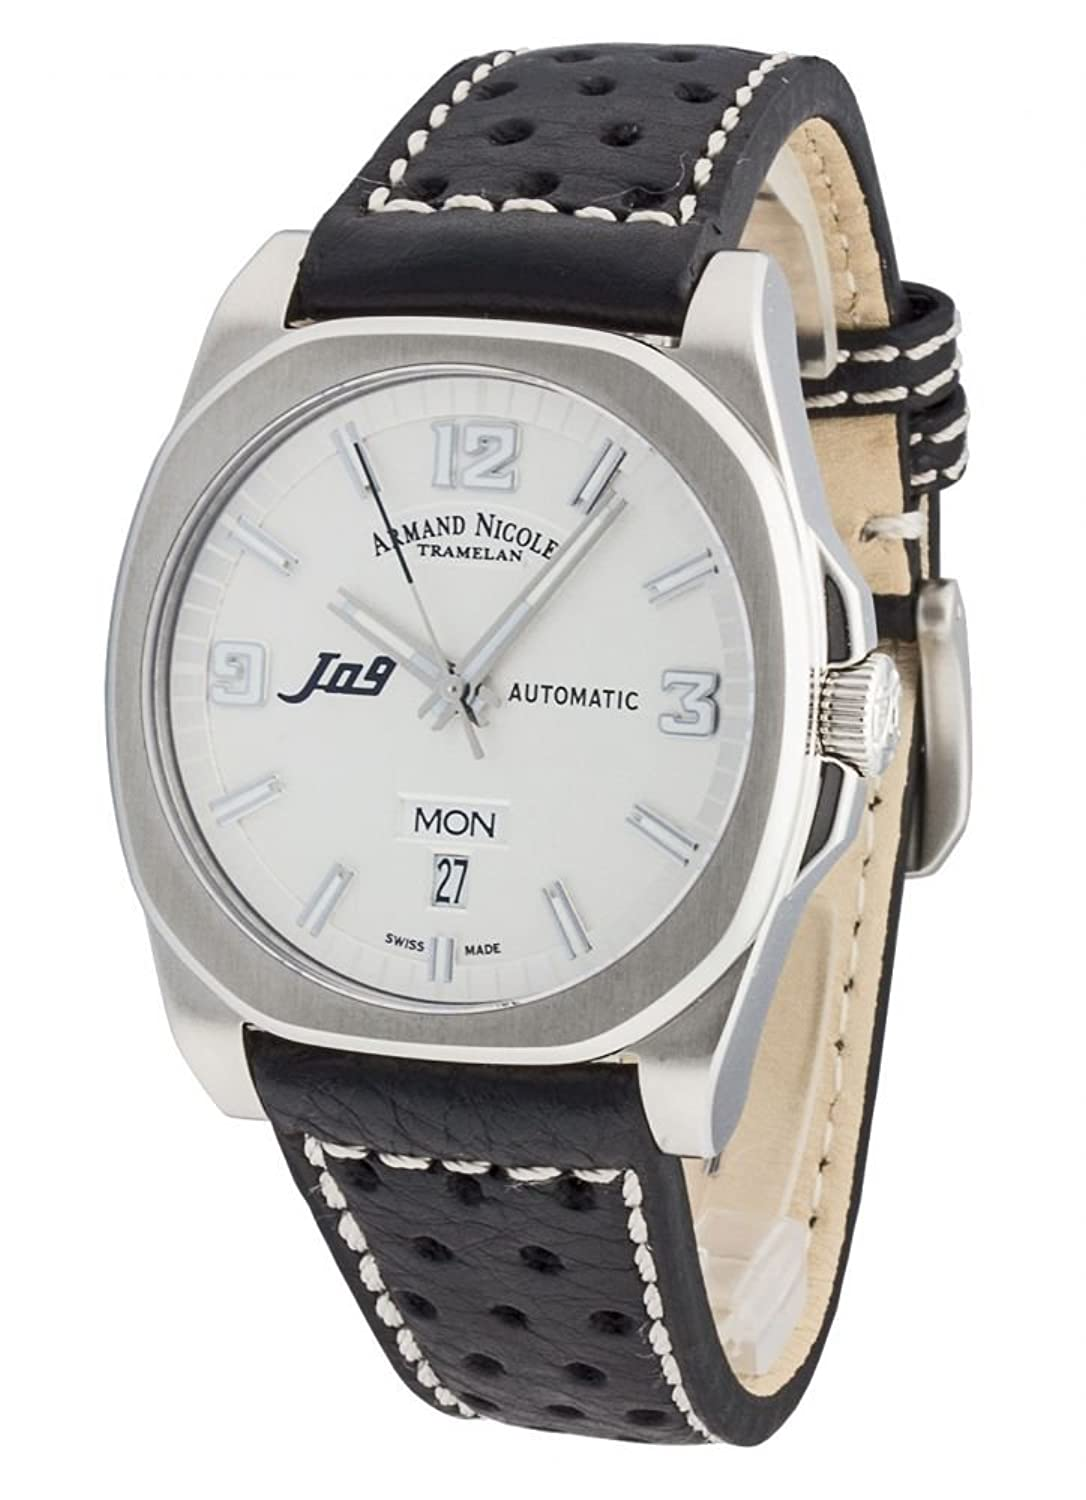 Armand Nicolet J09 Day&Date Automatic 9650A-AG-P660NR2